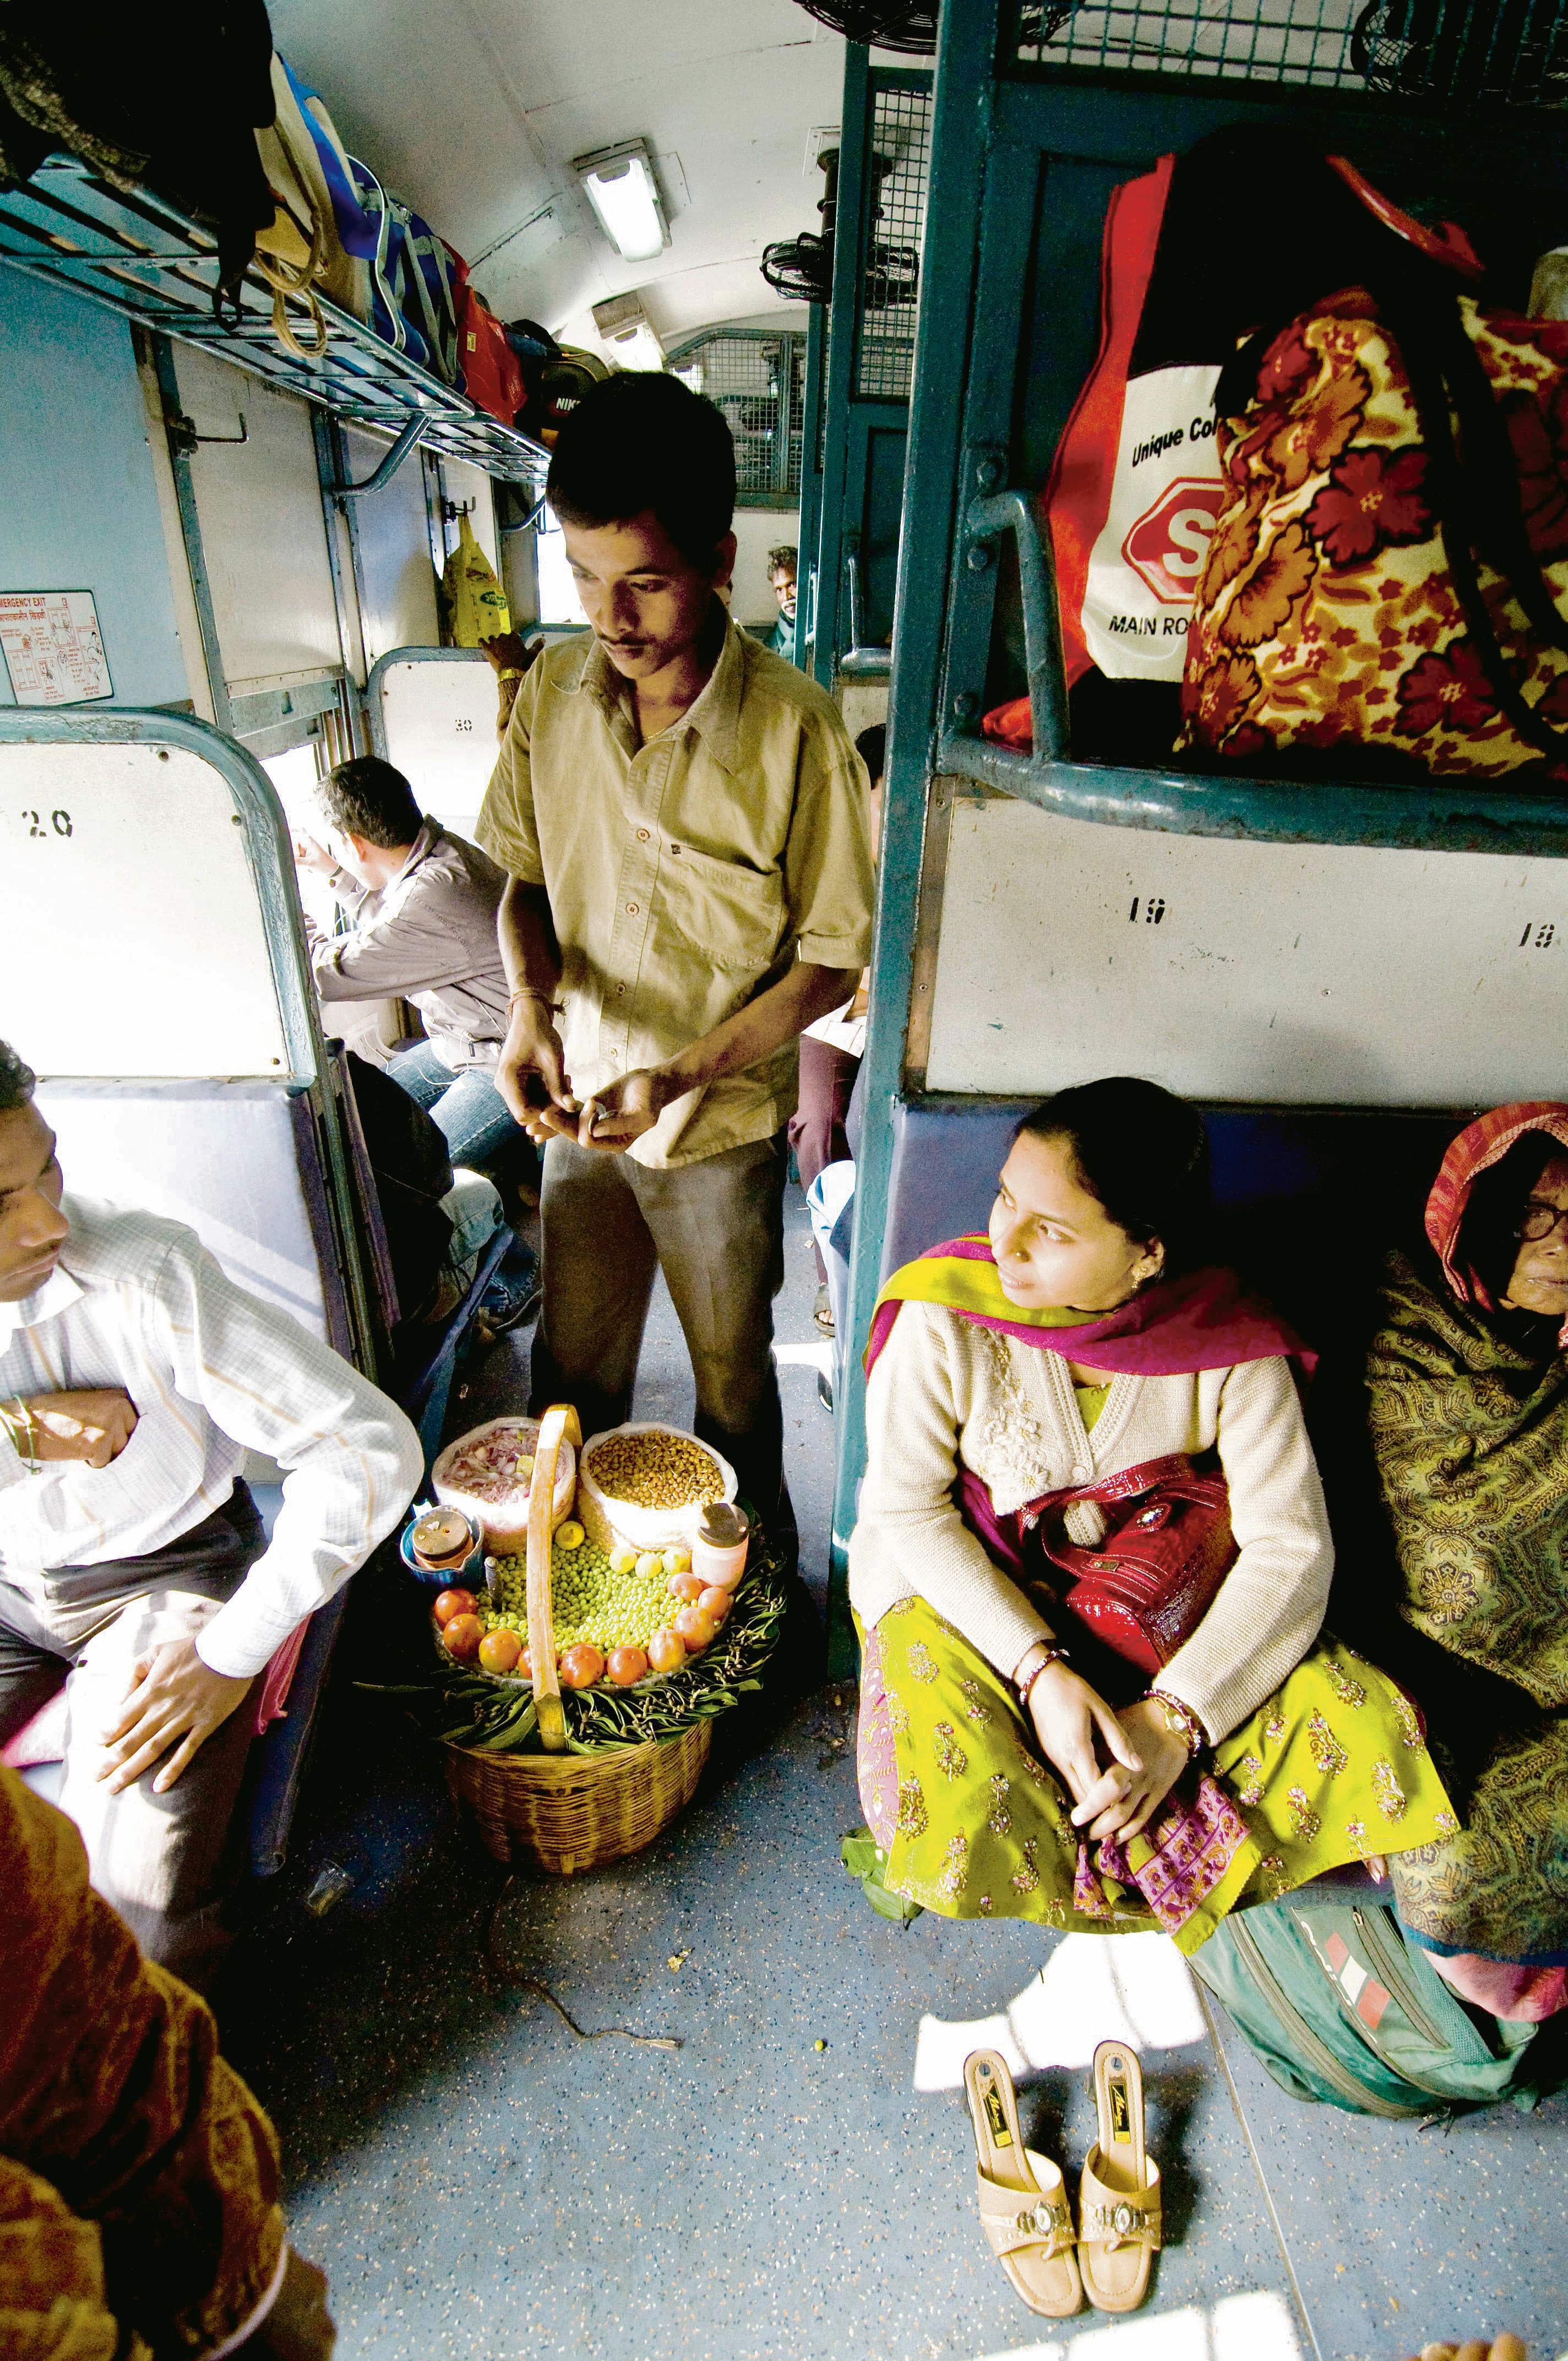 A vendor selling snacks on a train in Odisha. Photo: Alamy